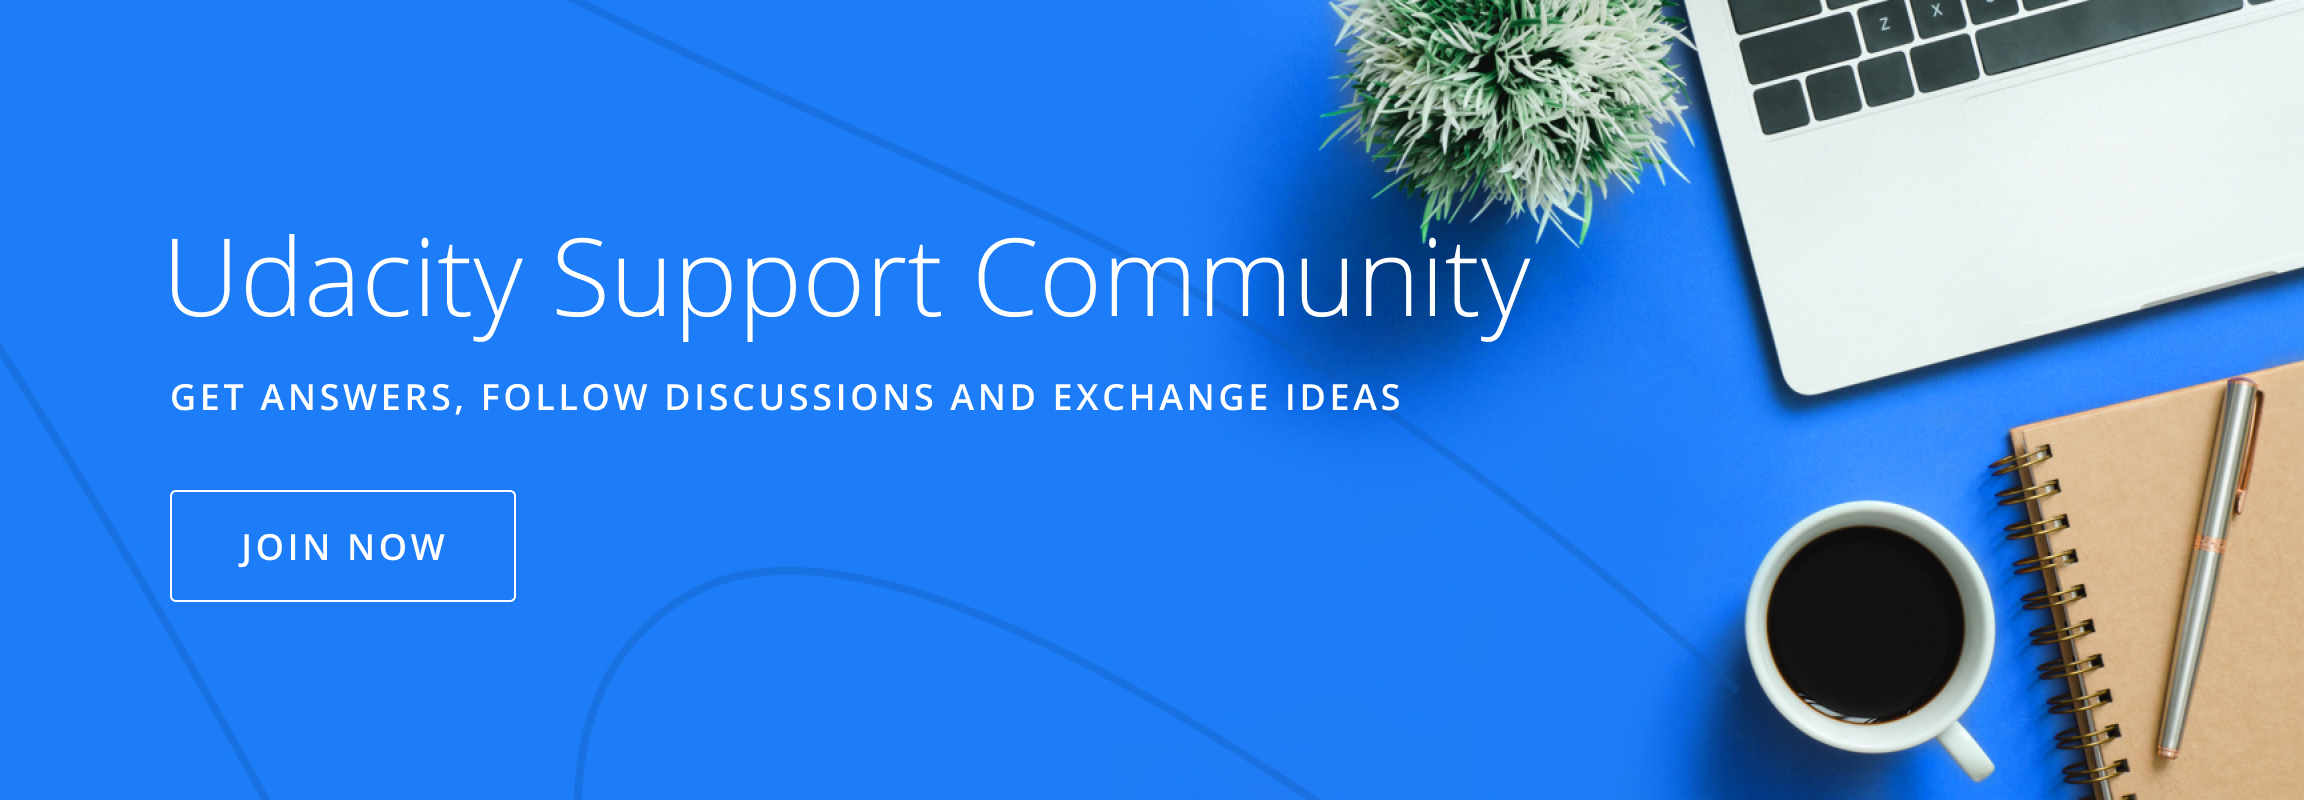 Udacity Support Community